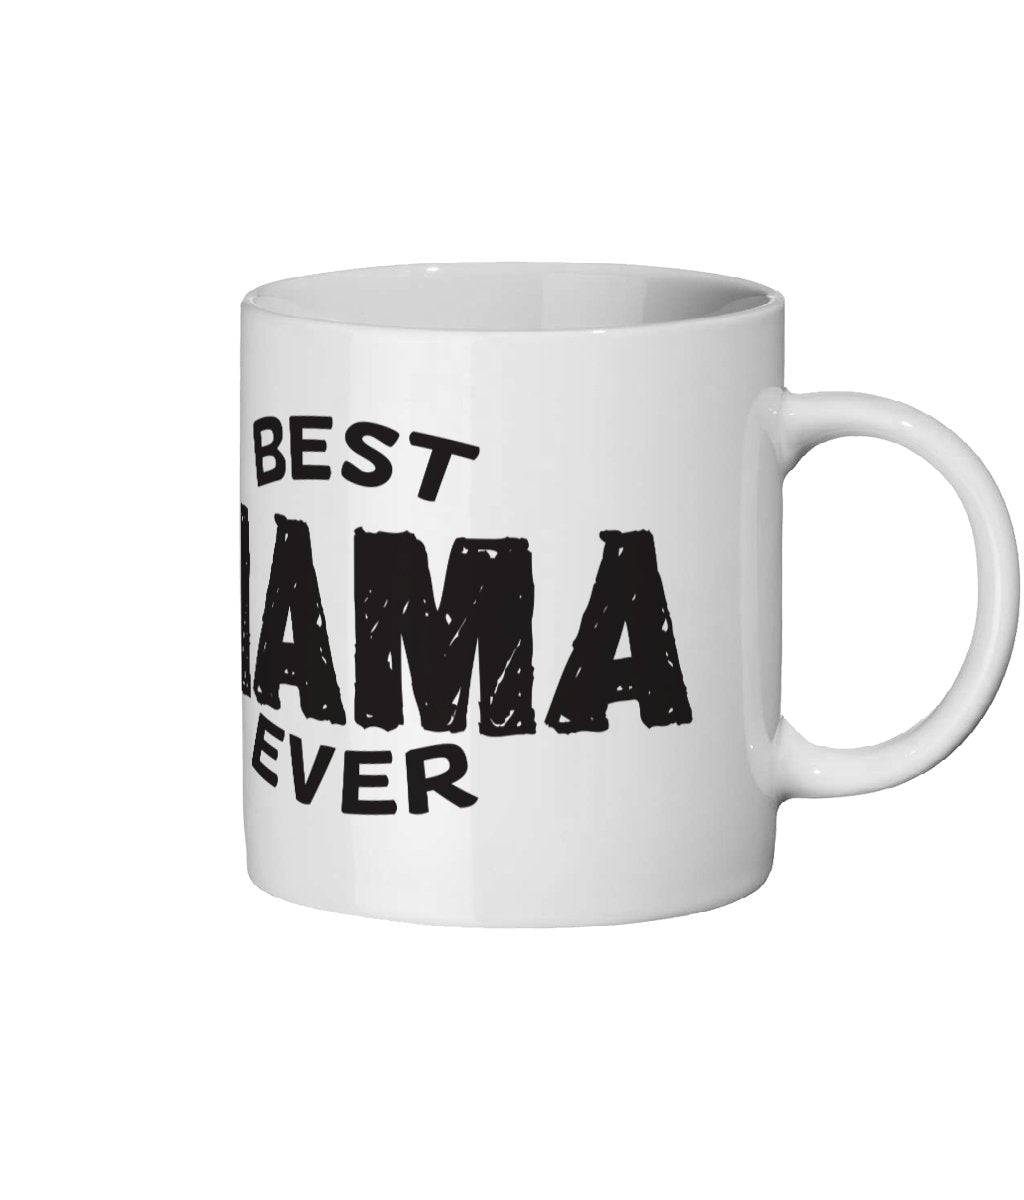 Best Mama Ever Ceramic Mug 11oz - The Gift Project